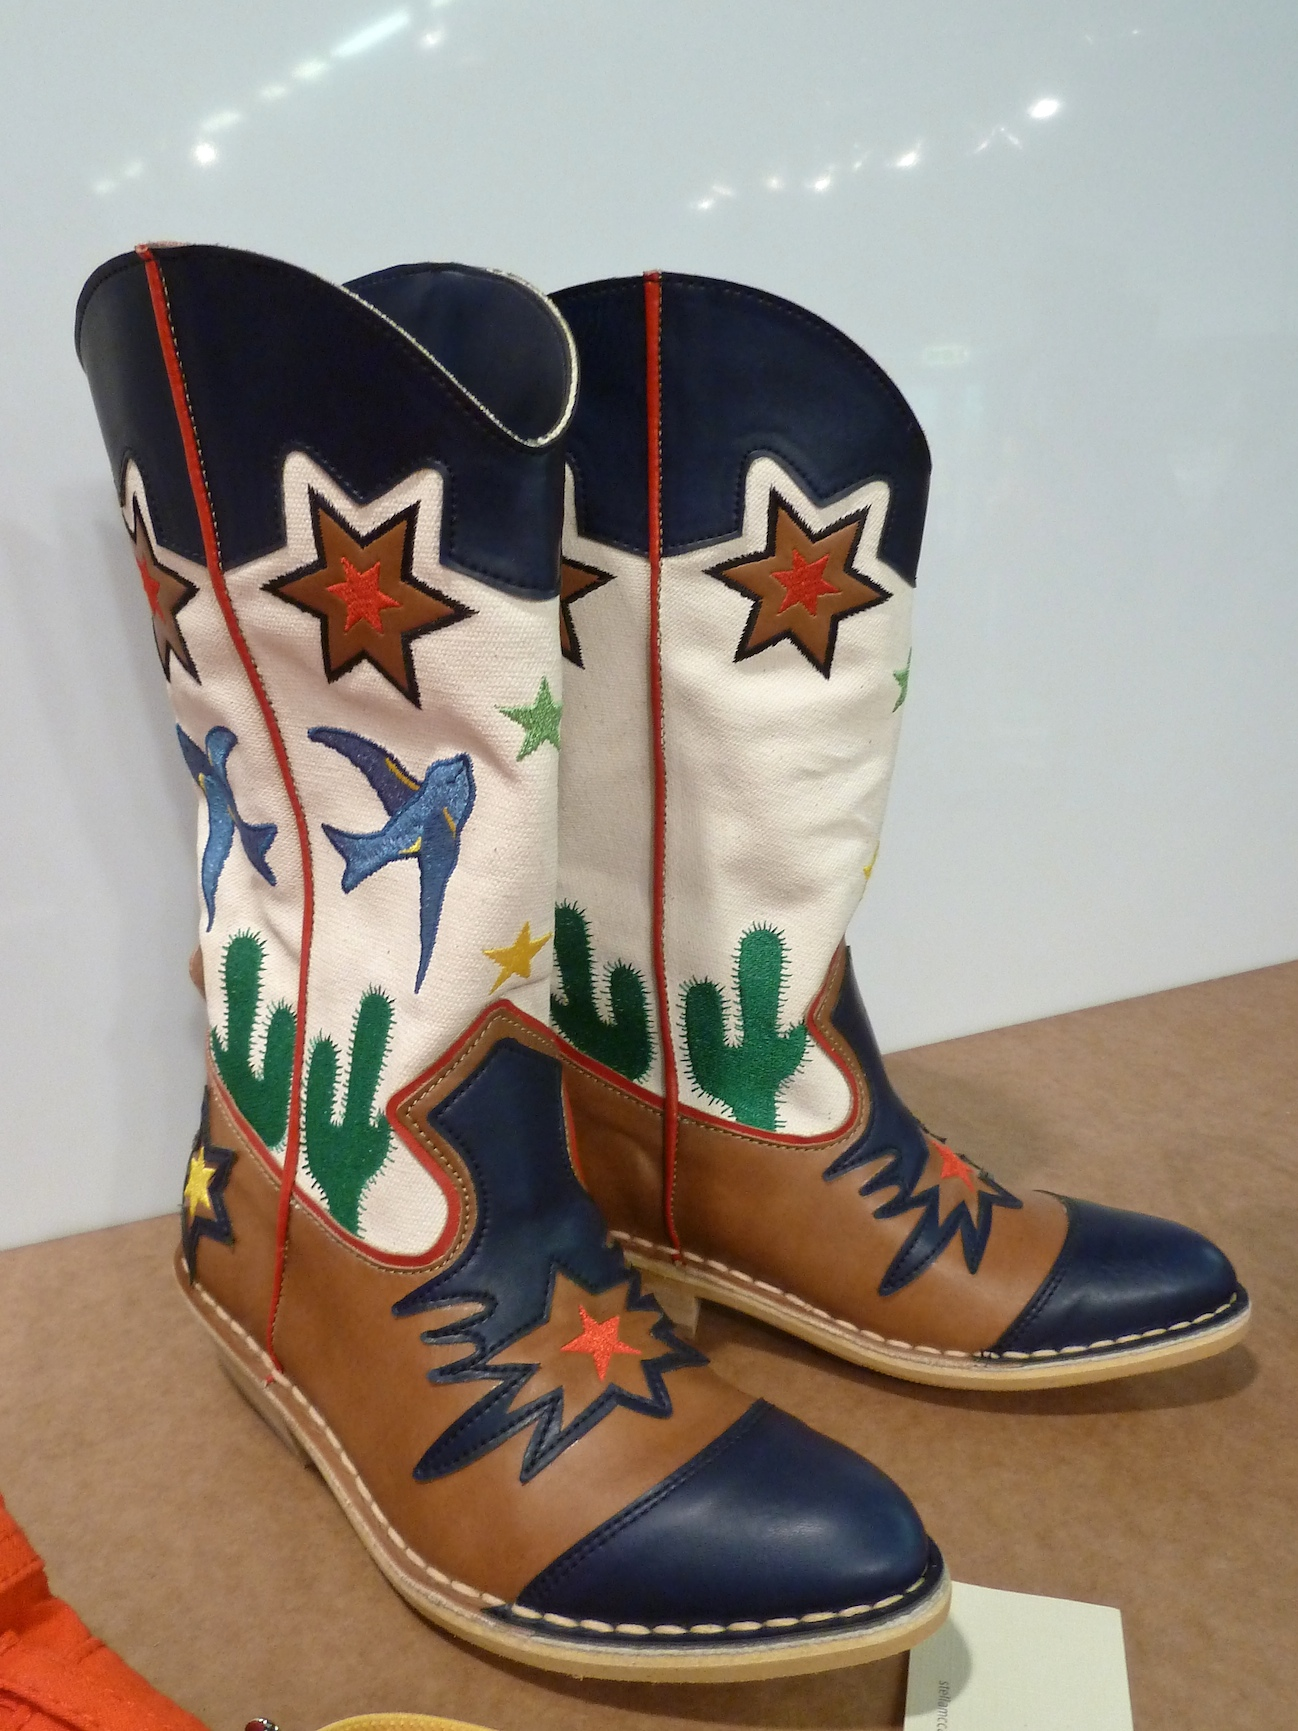 Cool, cool cowboy boots for kids from Stella McCartney at Pitti Bimbo 73